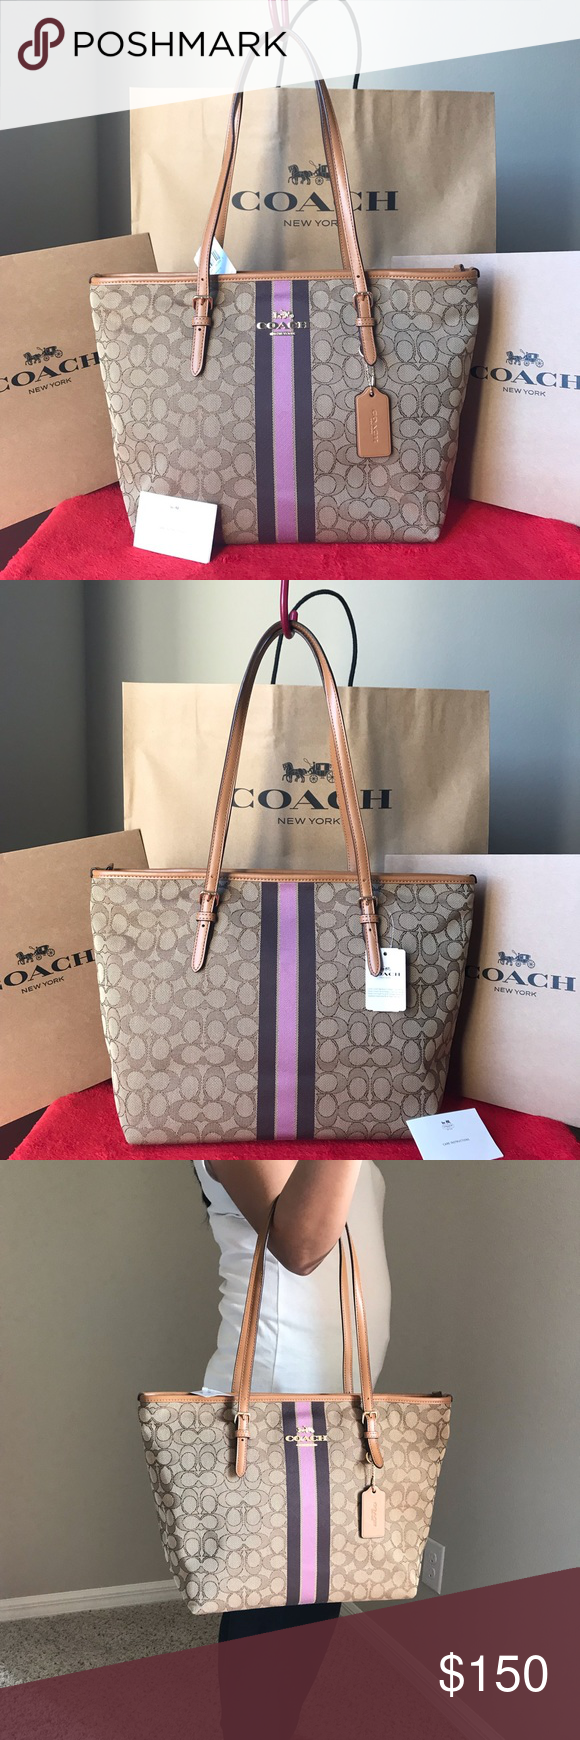 725c3b817196 ✅✅NWT Coach Purse✅✅ Coach F39043 Zip Top Tote In Signature Jacquard With  Stripe Khaki Multi   Brand new with tags   Approximate Measurements  16